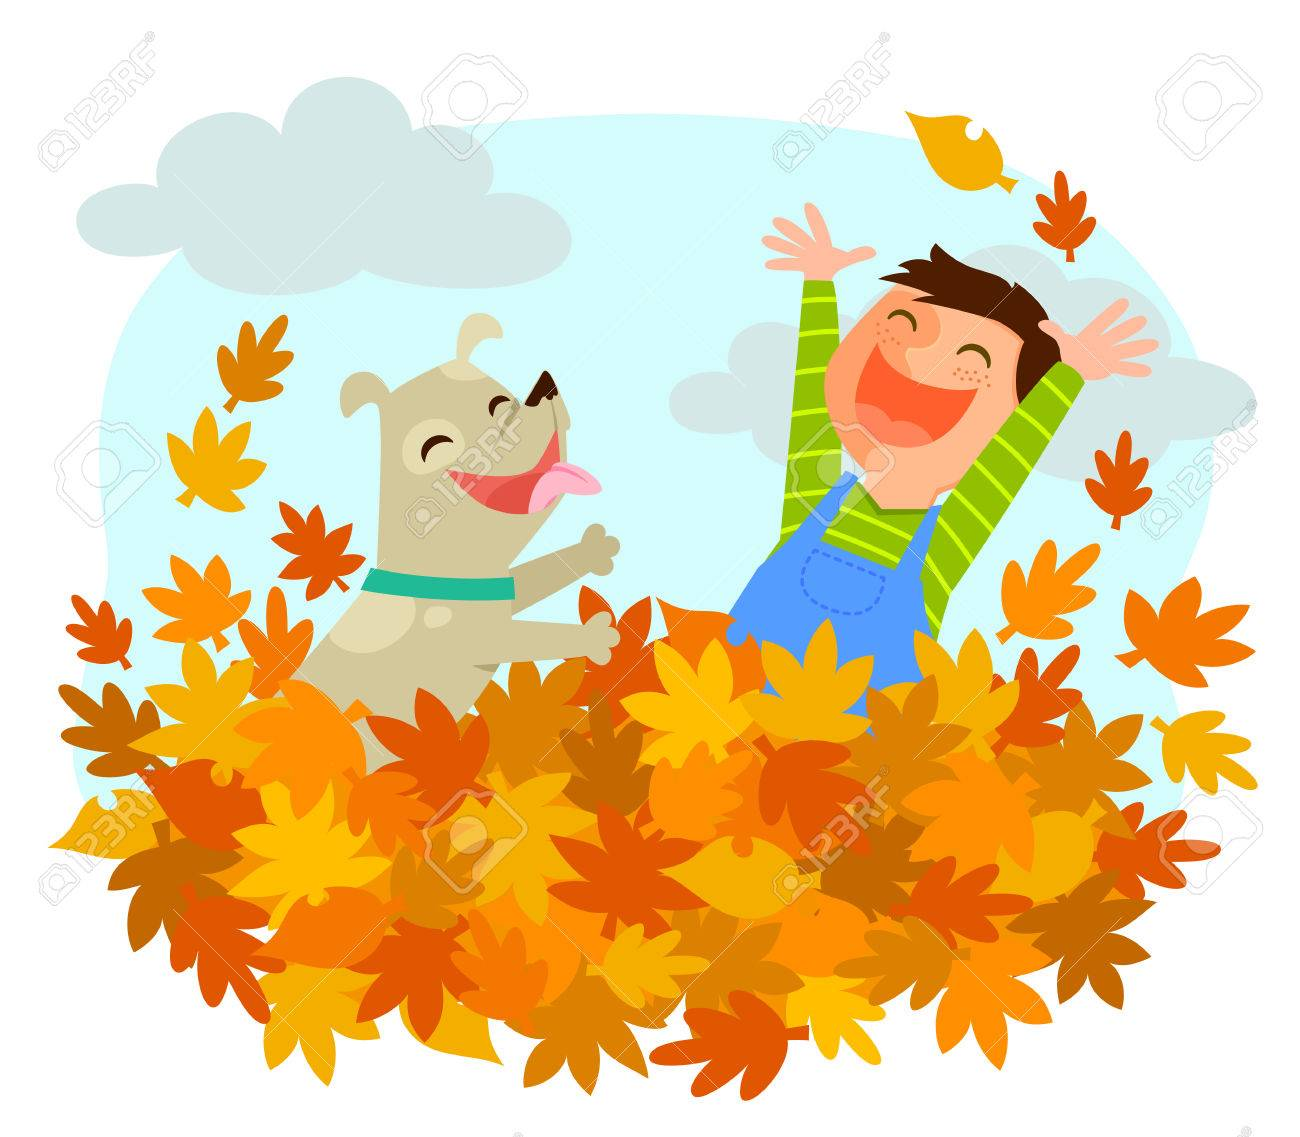 Boy And His Dog Playing In A Pile Of Autumn Leaves Royalty Free Cliparts Vectors And Stock Illustration Image 64664068